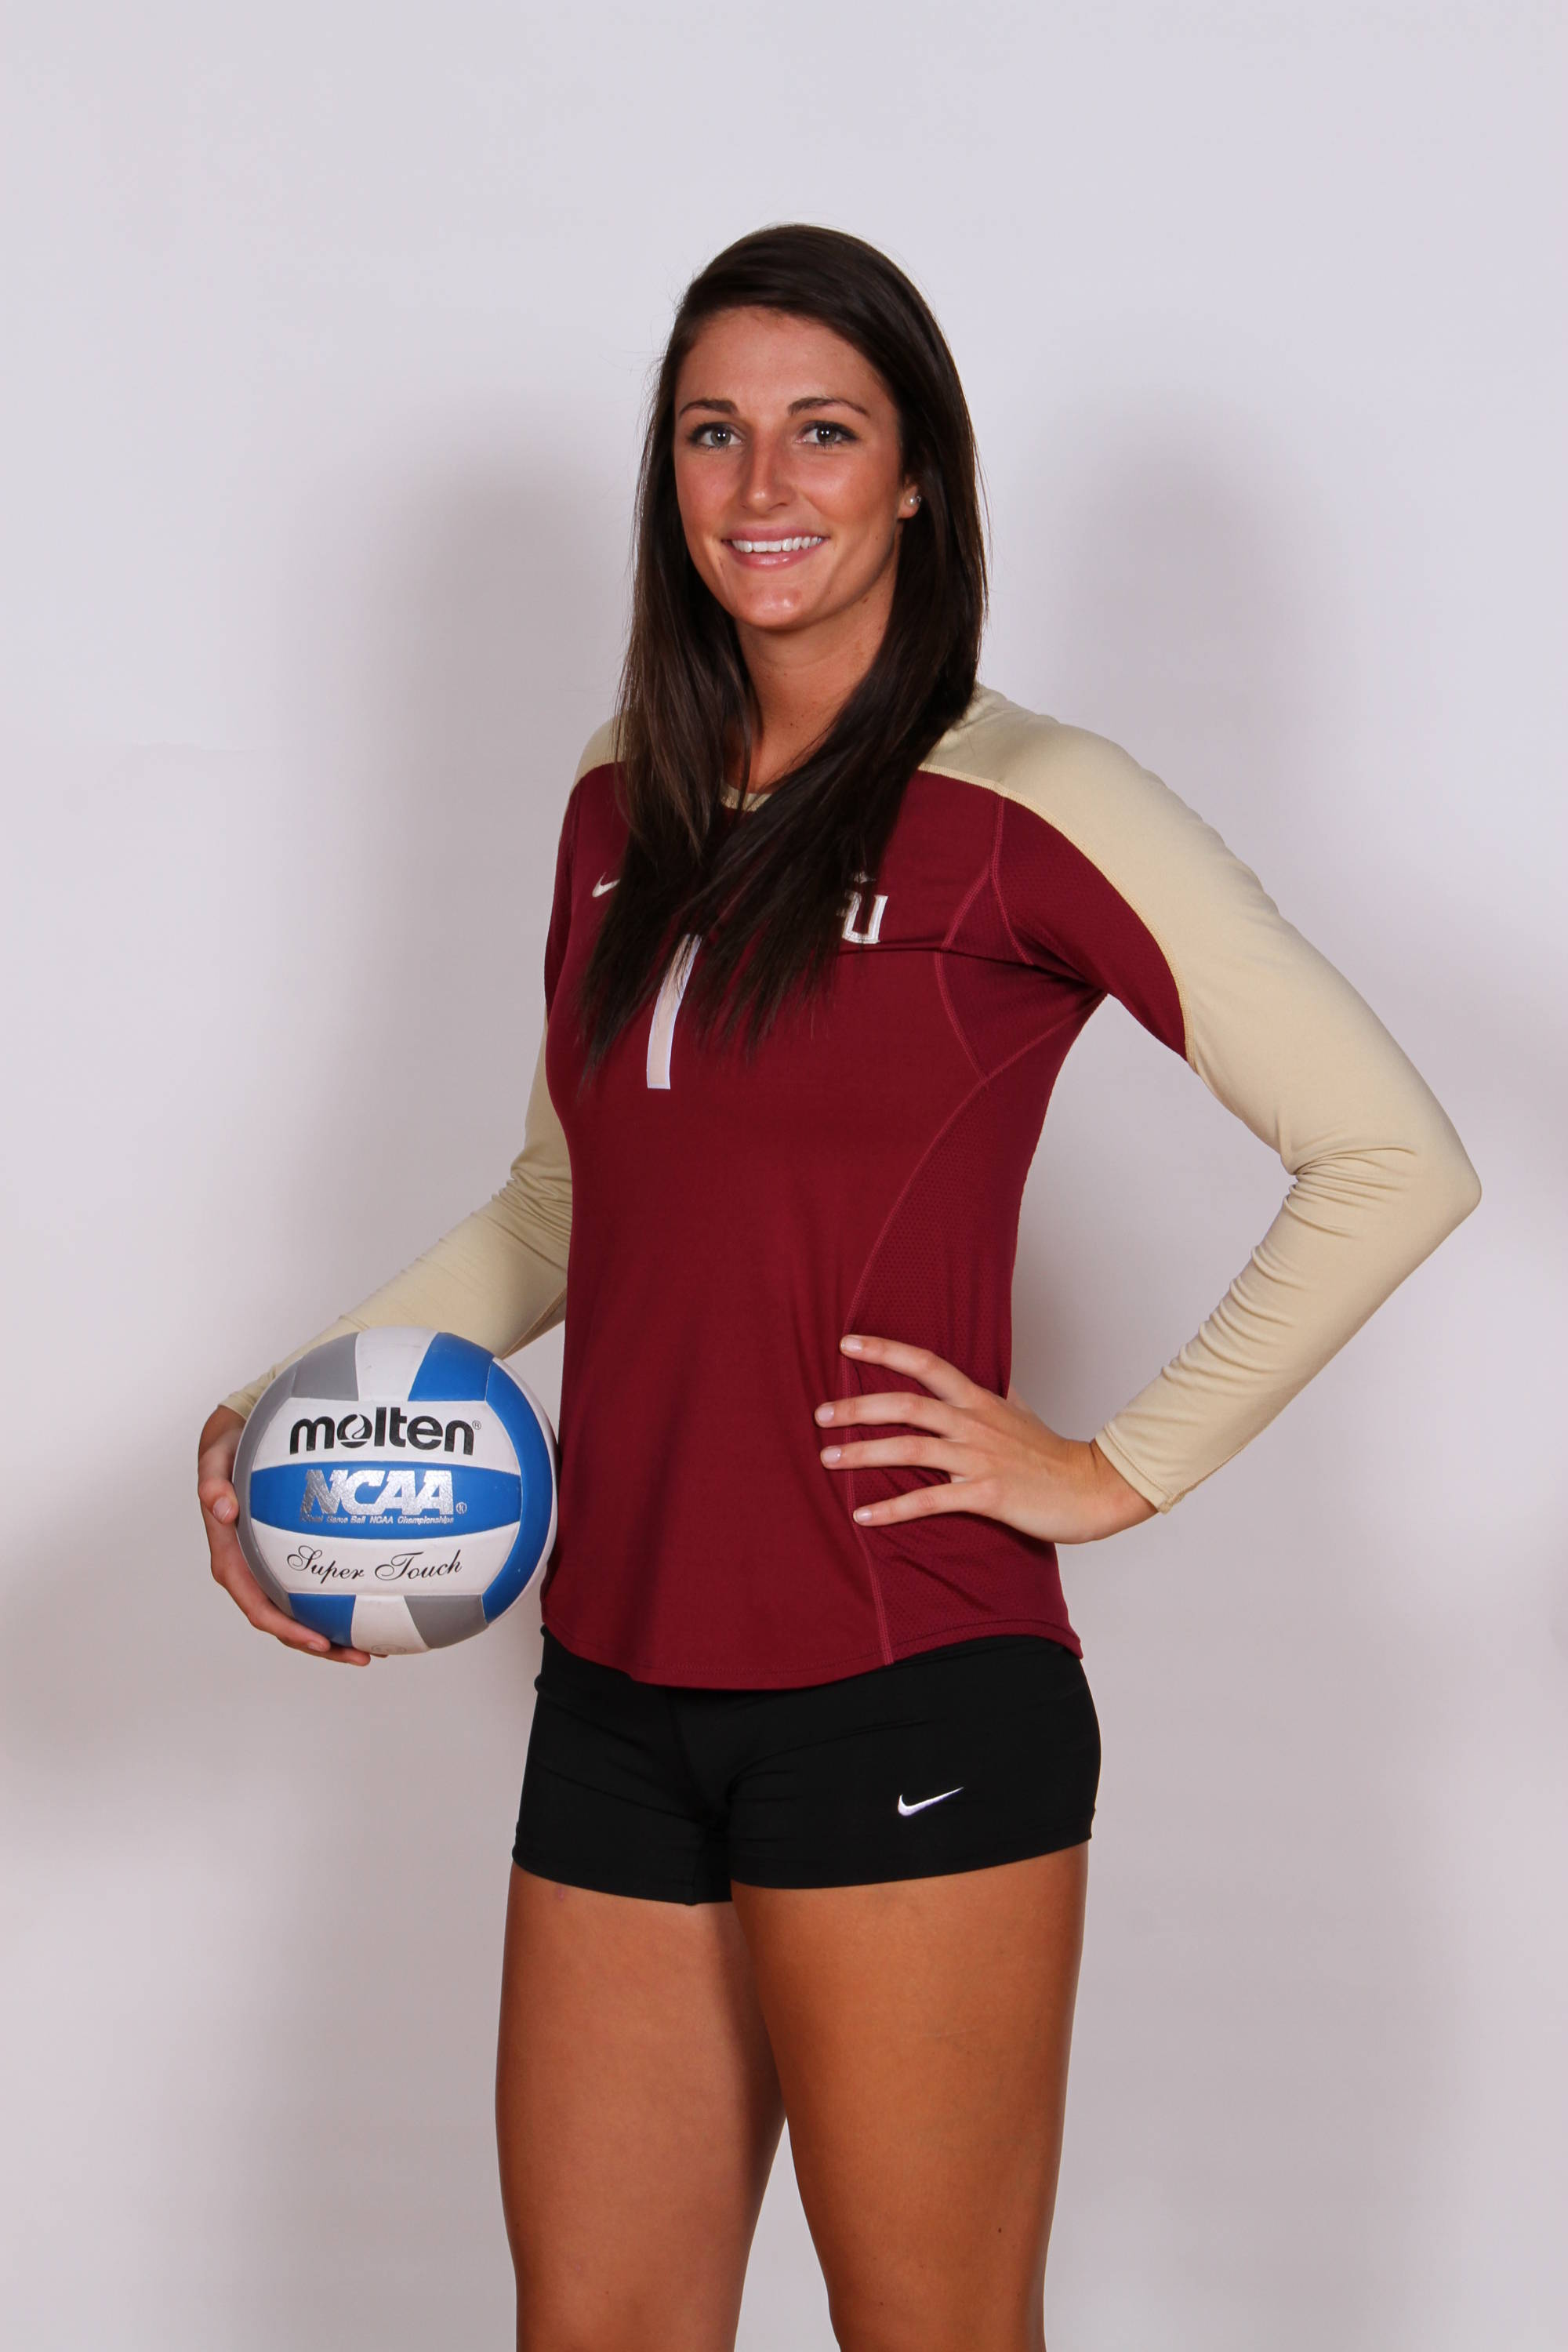 Rachael Morgan is ready to end her four-year FSU career strong!